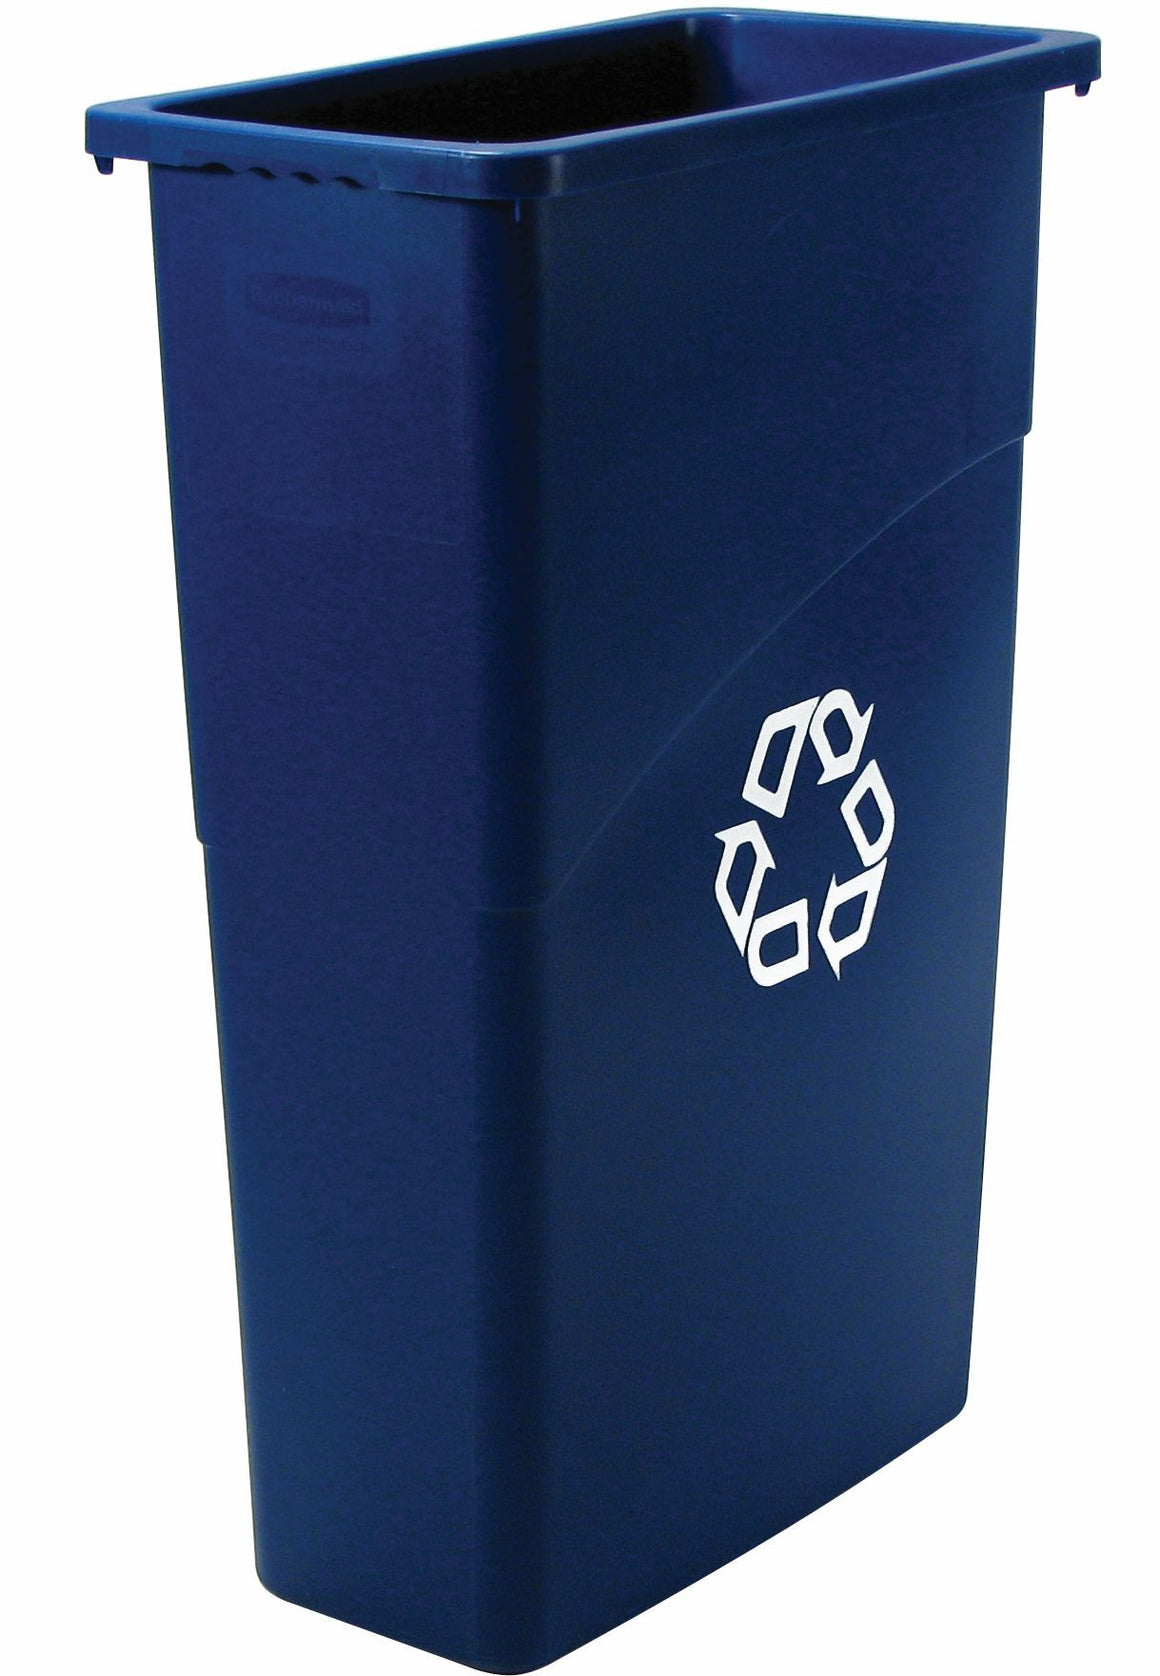 SLIM JIM 23gal RECYCLING CONT. BLUE